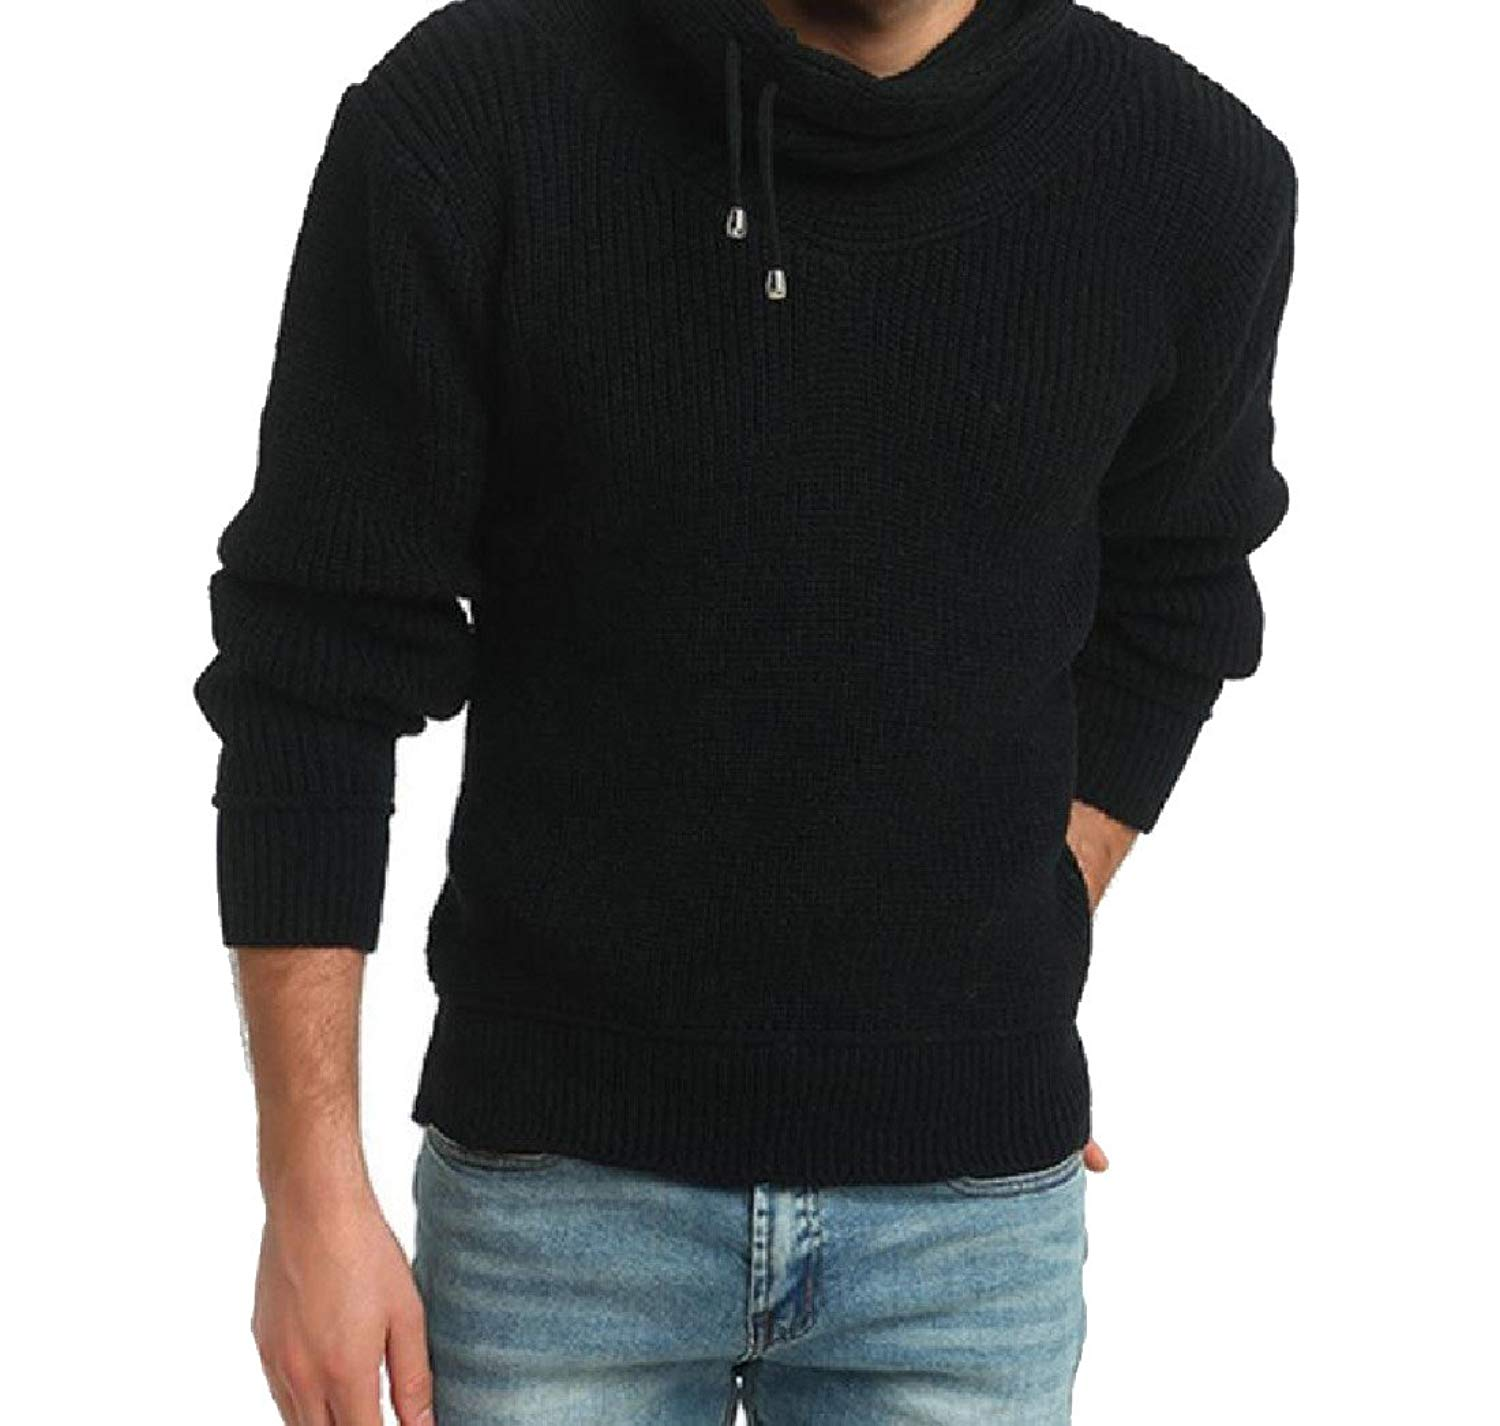 82fe822a256e8 Get Quotations · SportsX Mens Long-Sleeved Wash Hi-Neck Thicken Knit  Sweater Coat